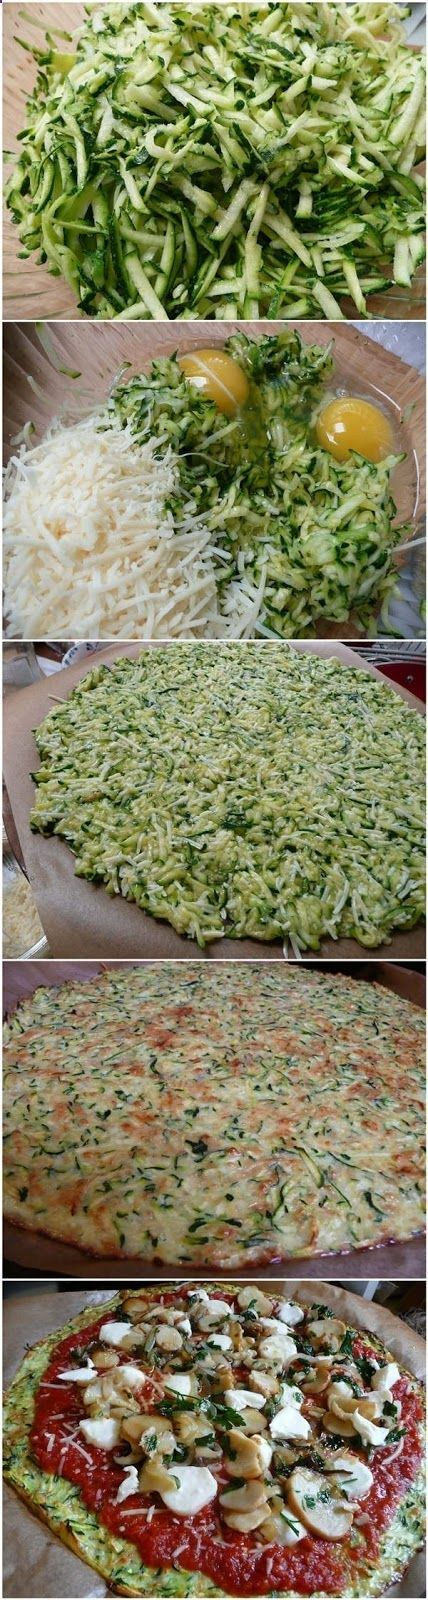 Zucchini Crust Pizza-@Chris Thrasher DiNatale for when you have too many zukes!!